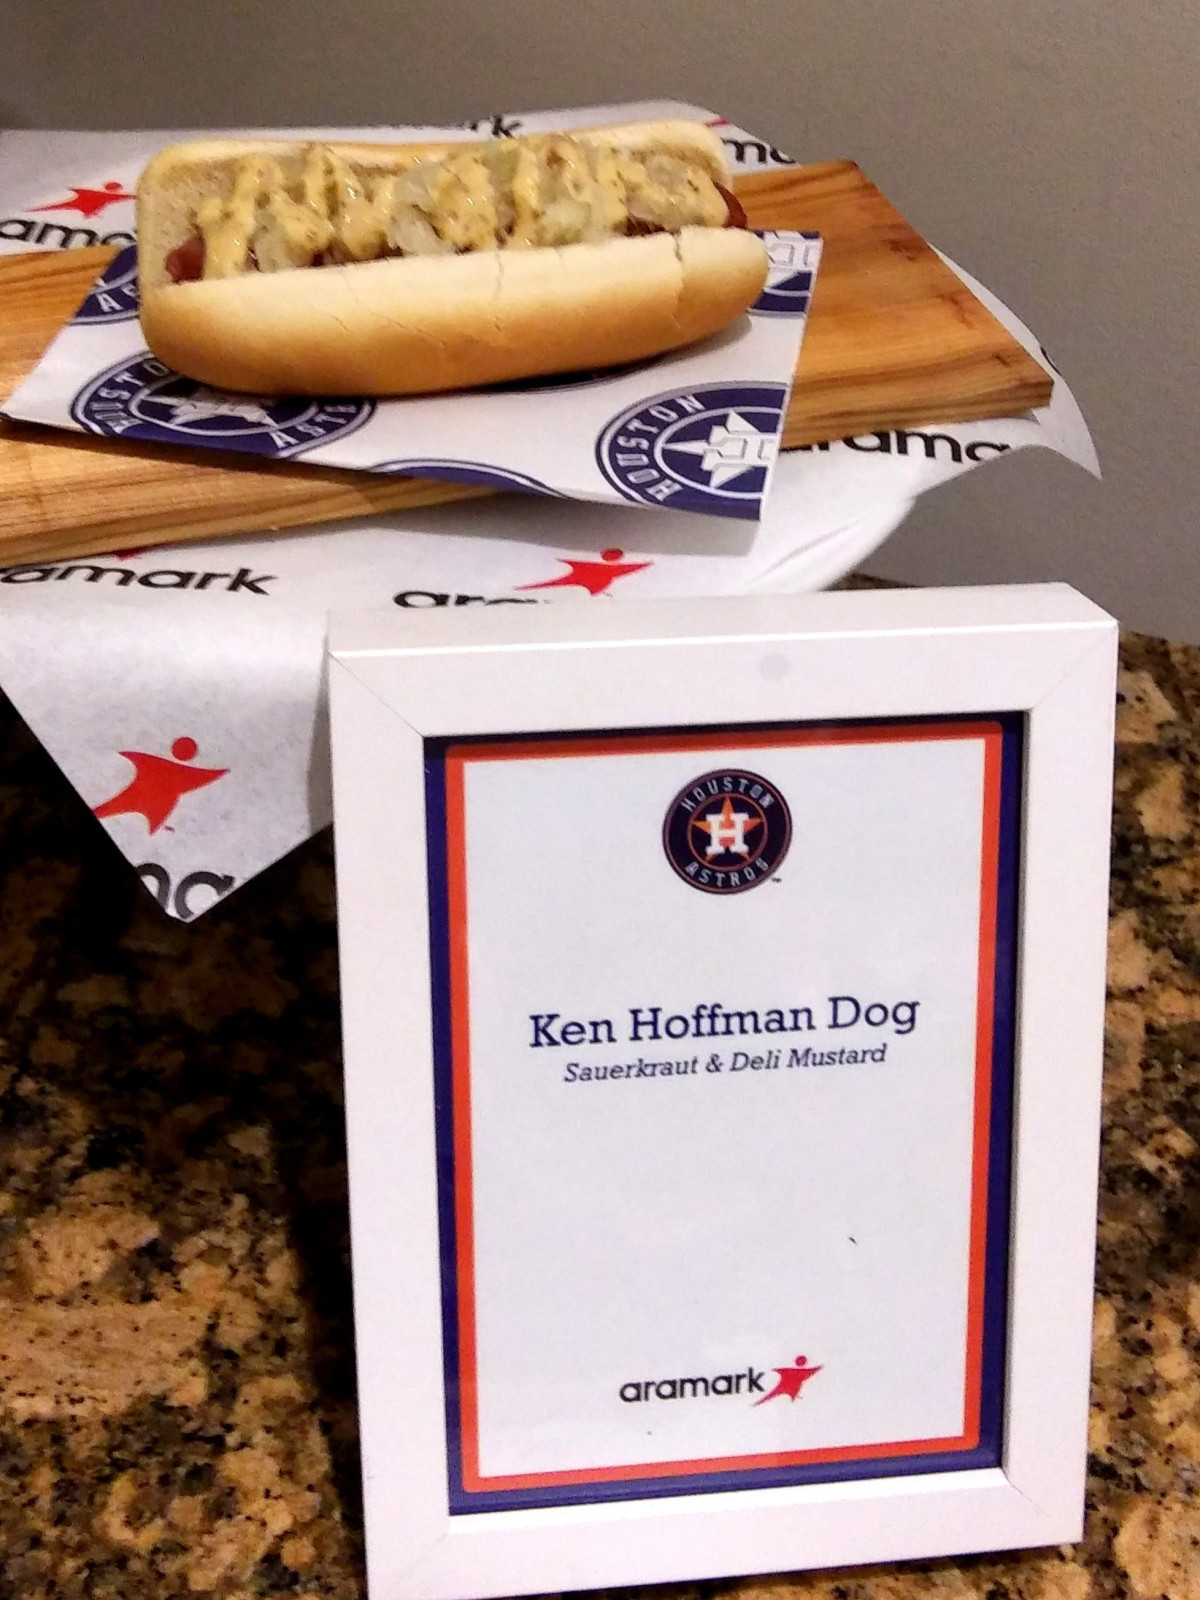 Houston Astros Stadium Food Minute Maid Park 2019 Ken Hoffman